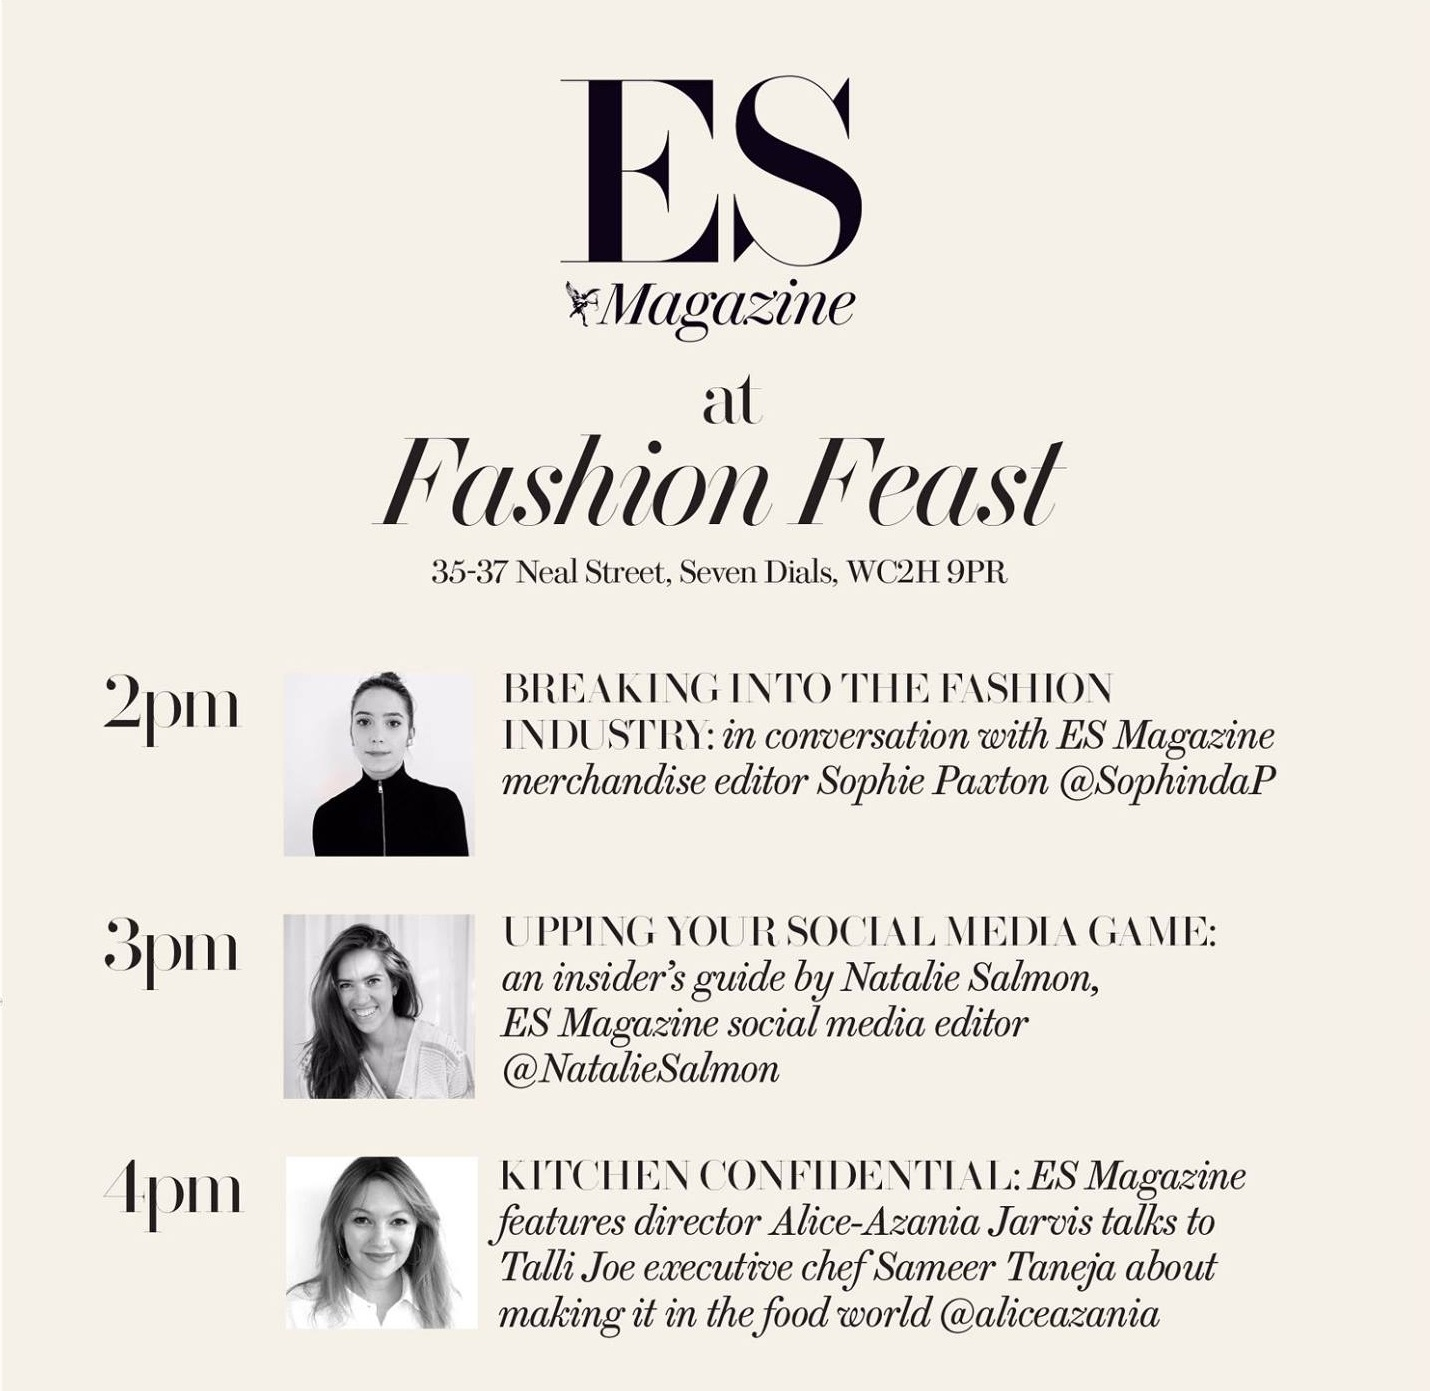 Fashion Feast at Seven Dials, June 2017 - On Saturday 10 June 2017, ESI media took over a shop in Seven Dials for a day of talks on fashion, social media and food, chaired by me.